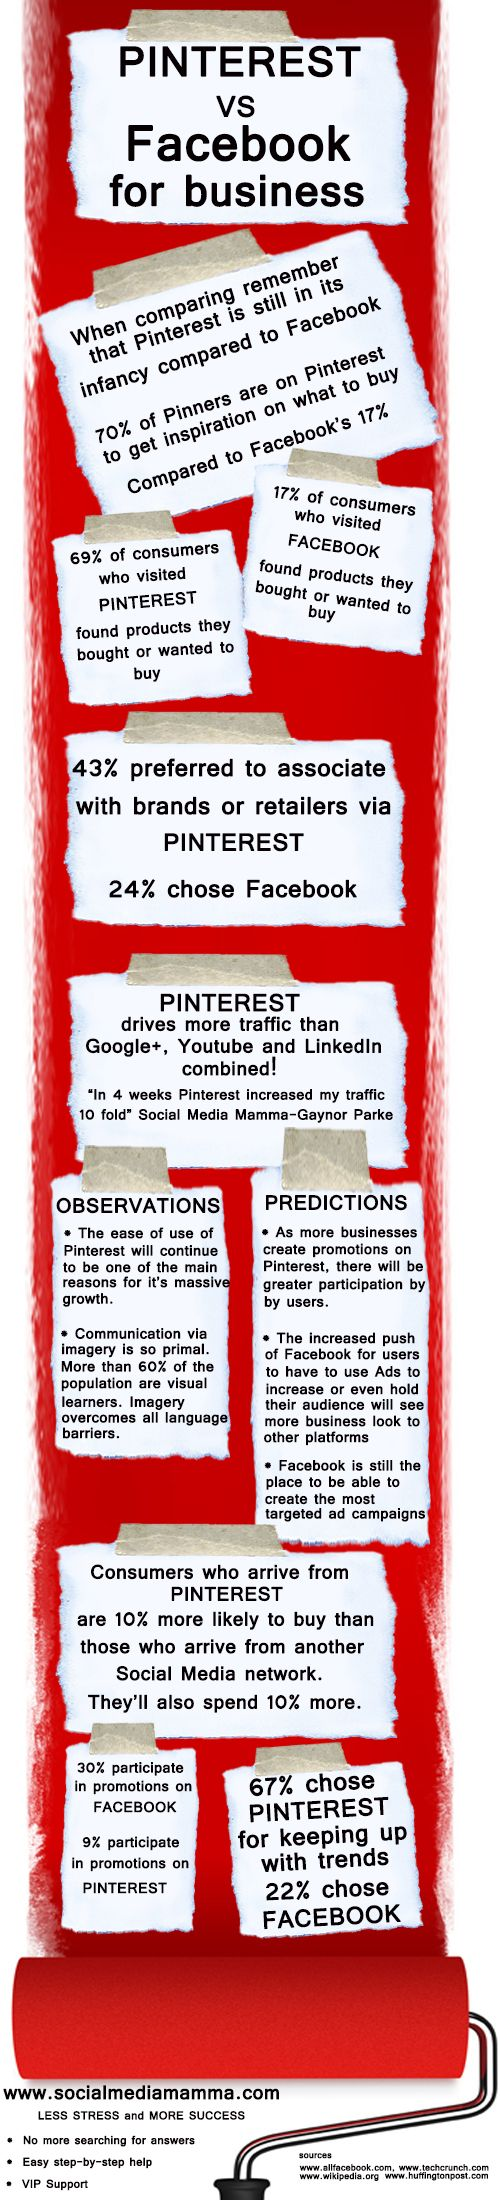 pinterest vs facebook.jpg